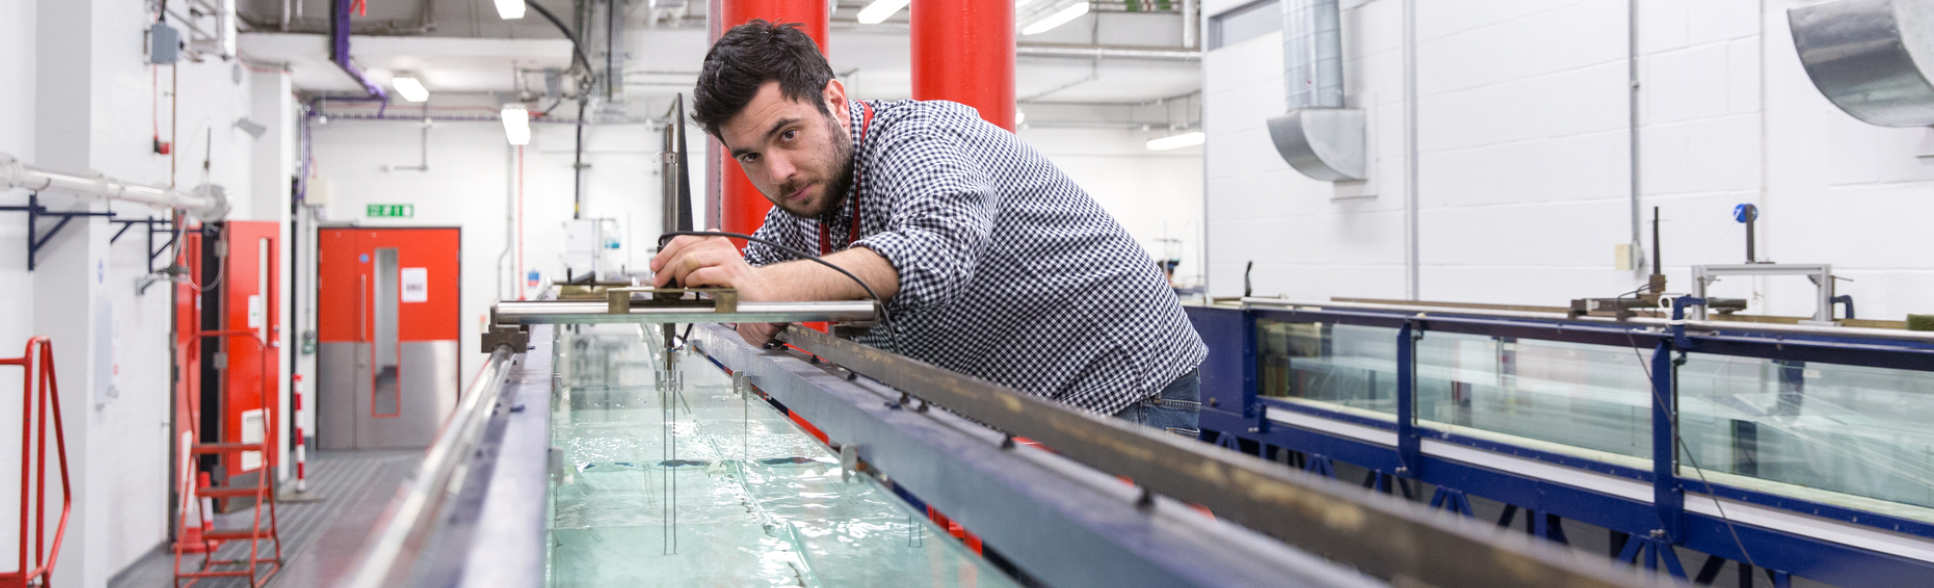 PG student Ioannis Karmpadakis preparing a wave demo for MSc students in the Fluid Mechanics Lab